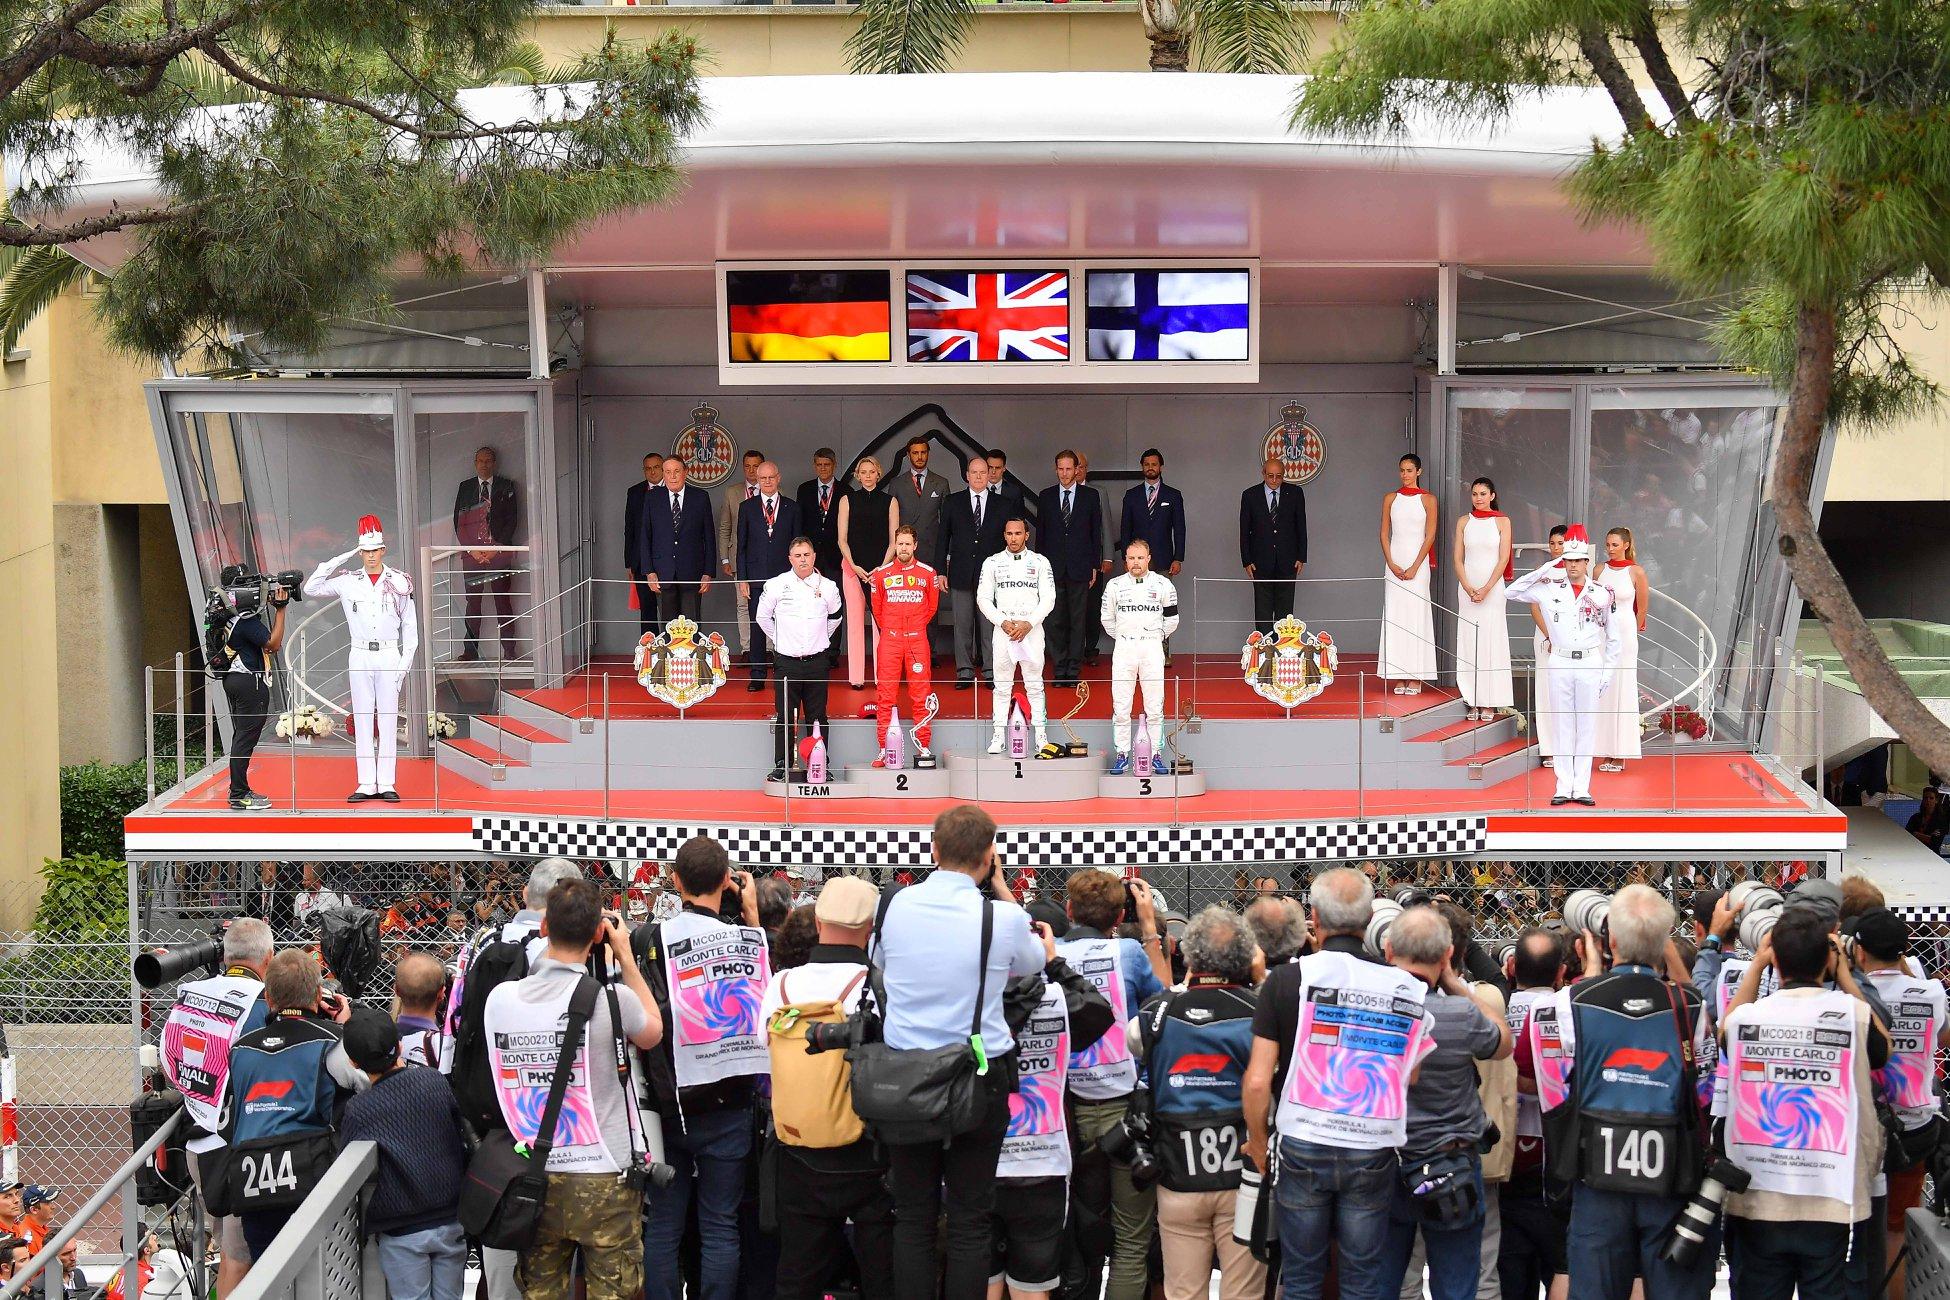 Monaco Formula 1 Grand Prix Awards Ceremony - Credit ACM_Alesi